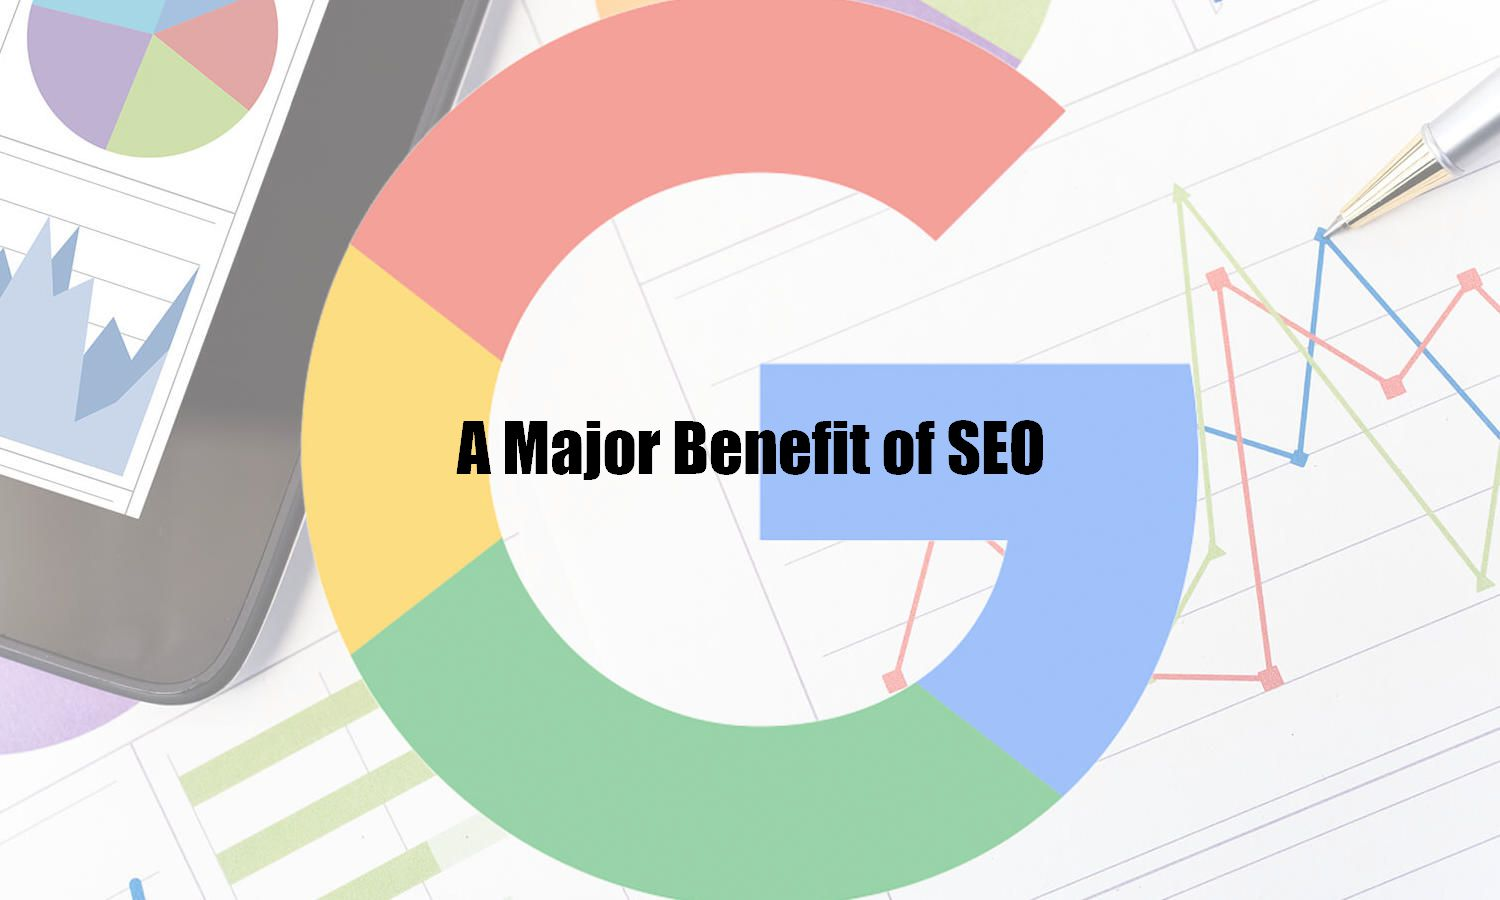 A Major Benefit of SEO